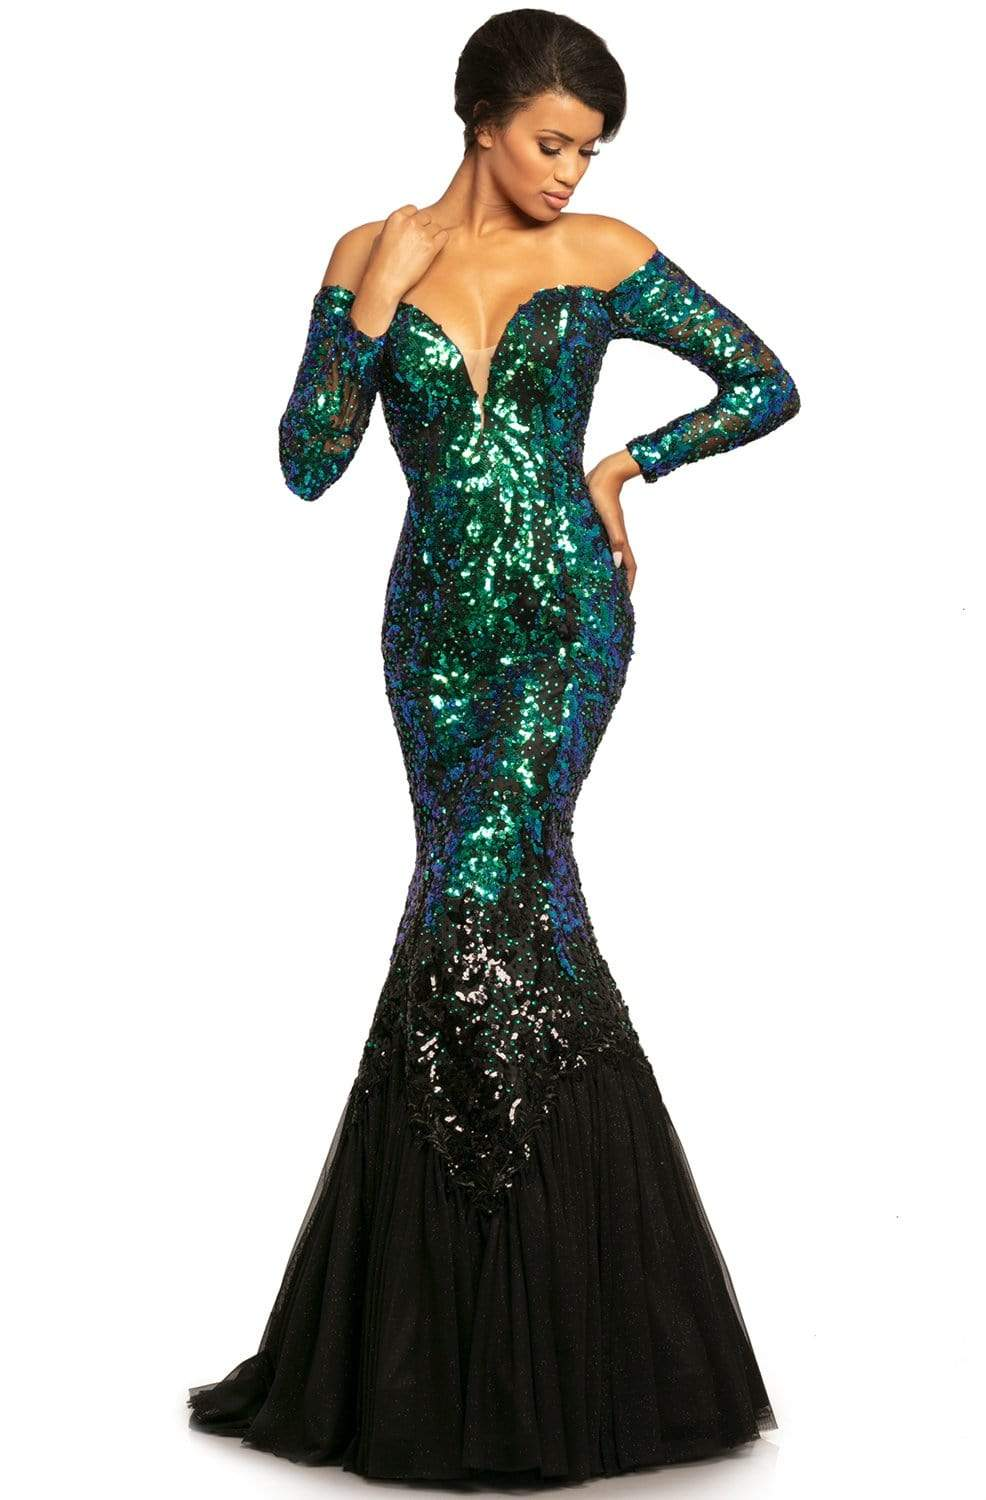 Johnathan Kayne - 2062 Long Sleeve Ombre Embellished Mermaid Gown from Johnathan Kayne